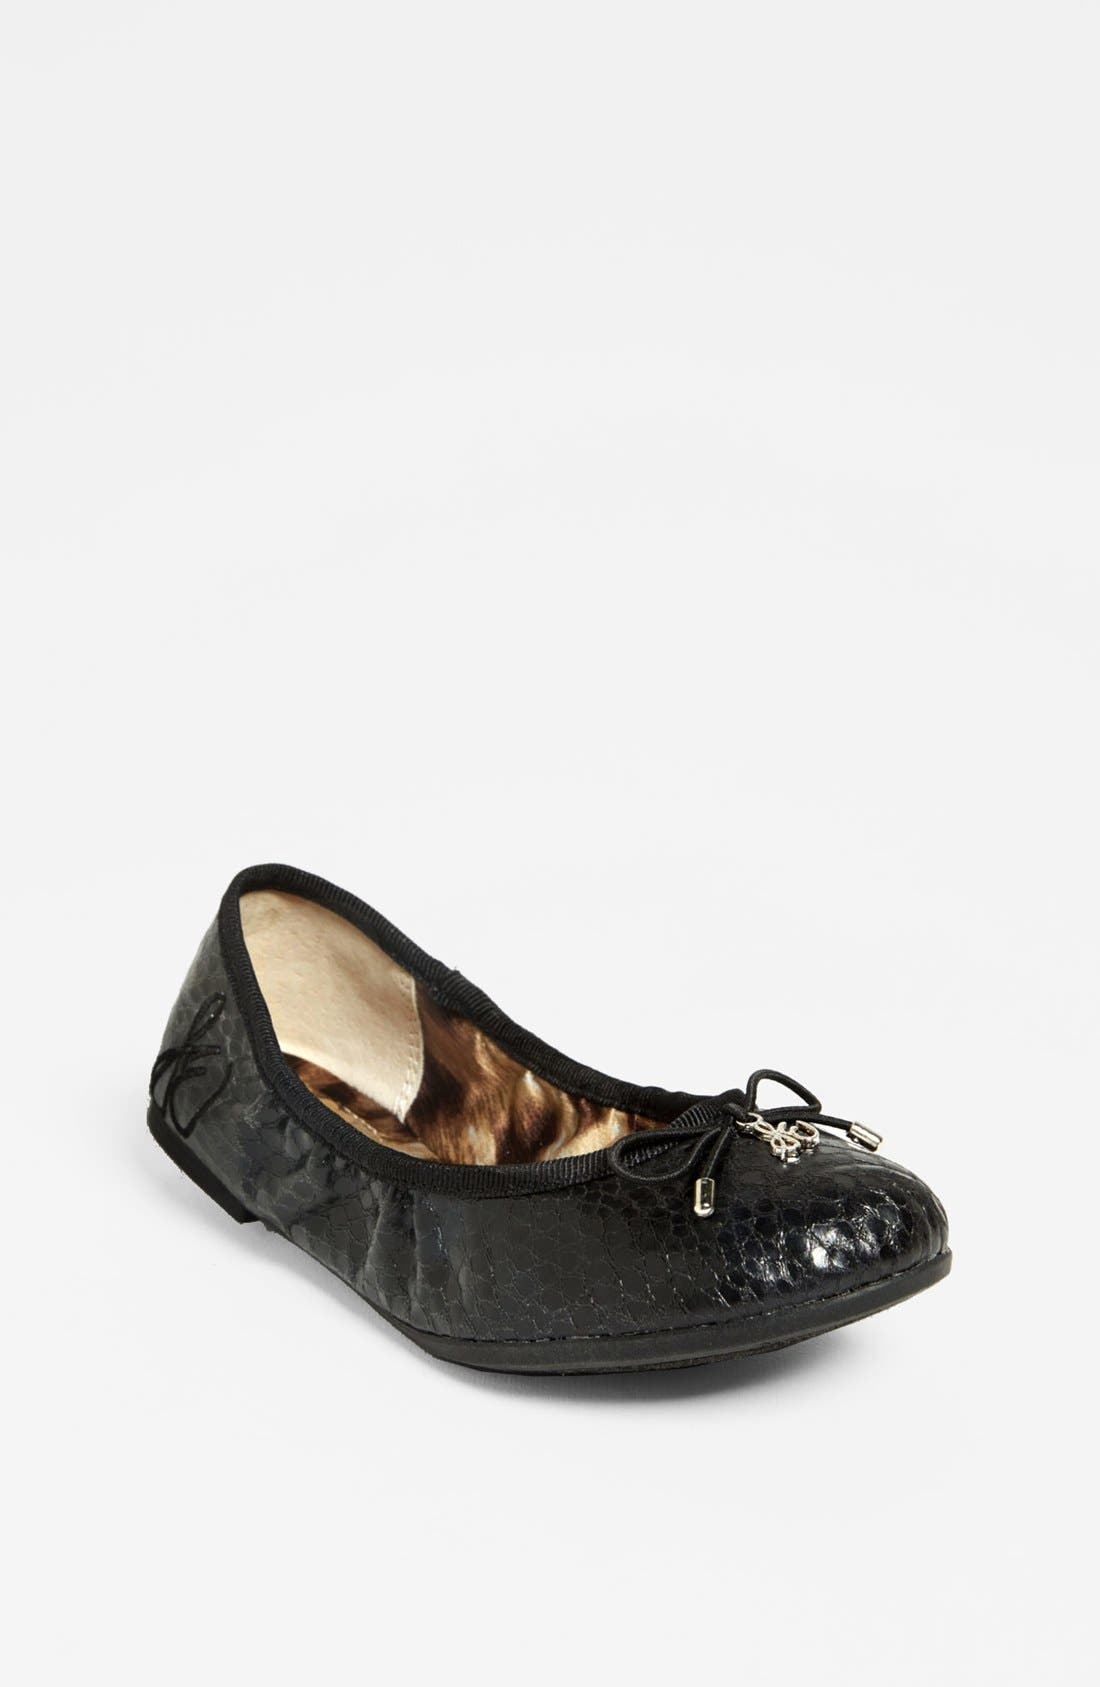 Alternate Image 1 Selected - Sam Edelman 'Fiona' Ballet Flat (Toddler, Little Kid & Big Kid)